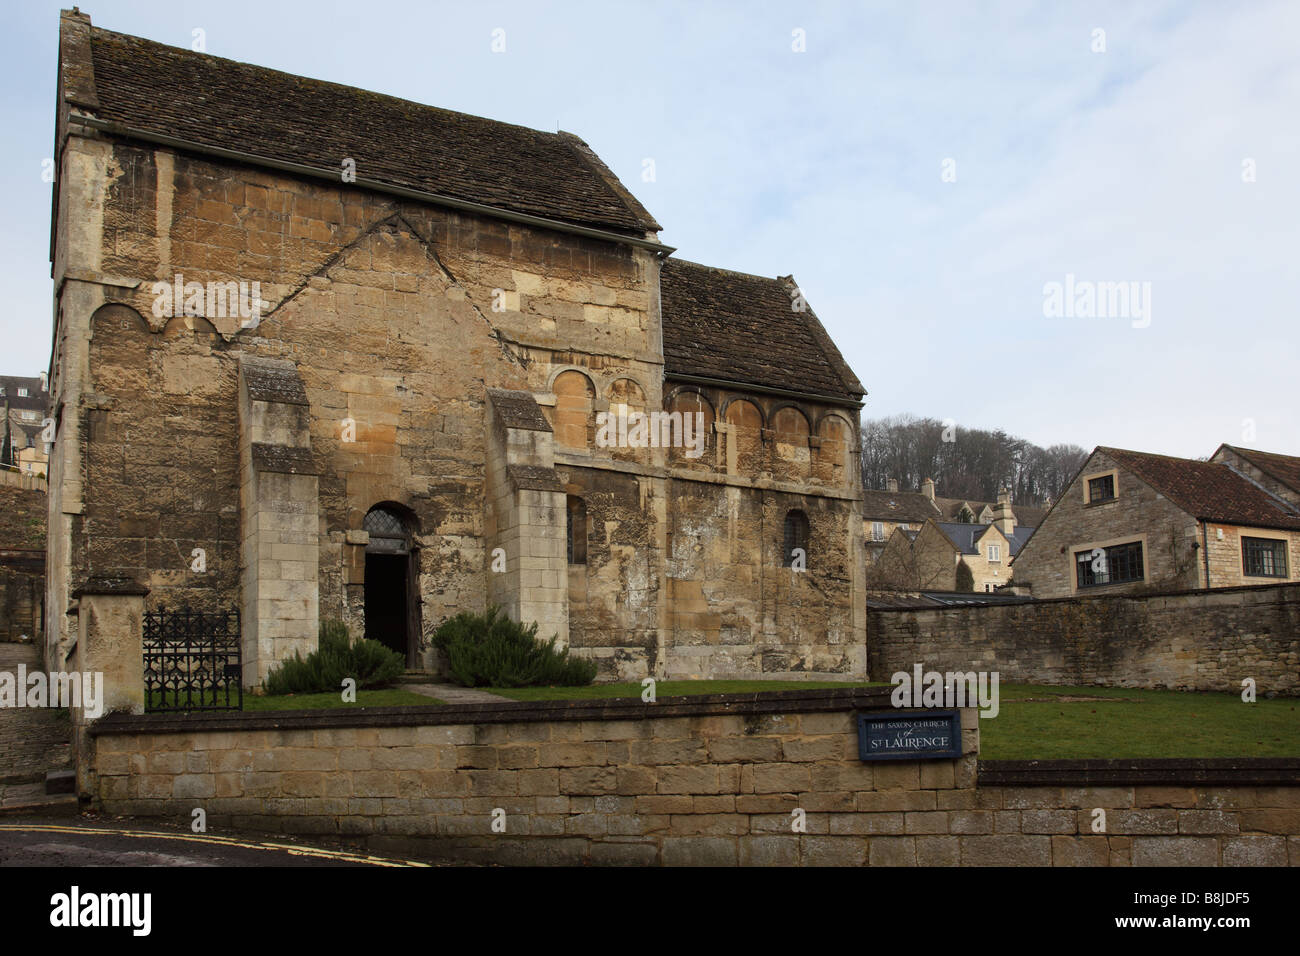 The Anglo-Saxon church of St Laurence, Bradford on Avon, Wiltshire, England - Stock Image